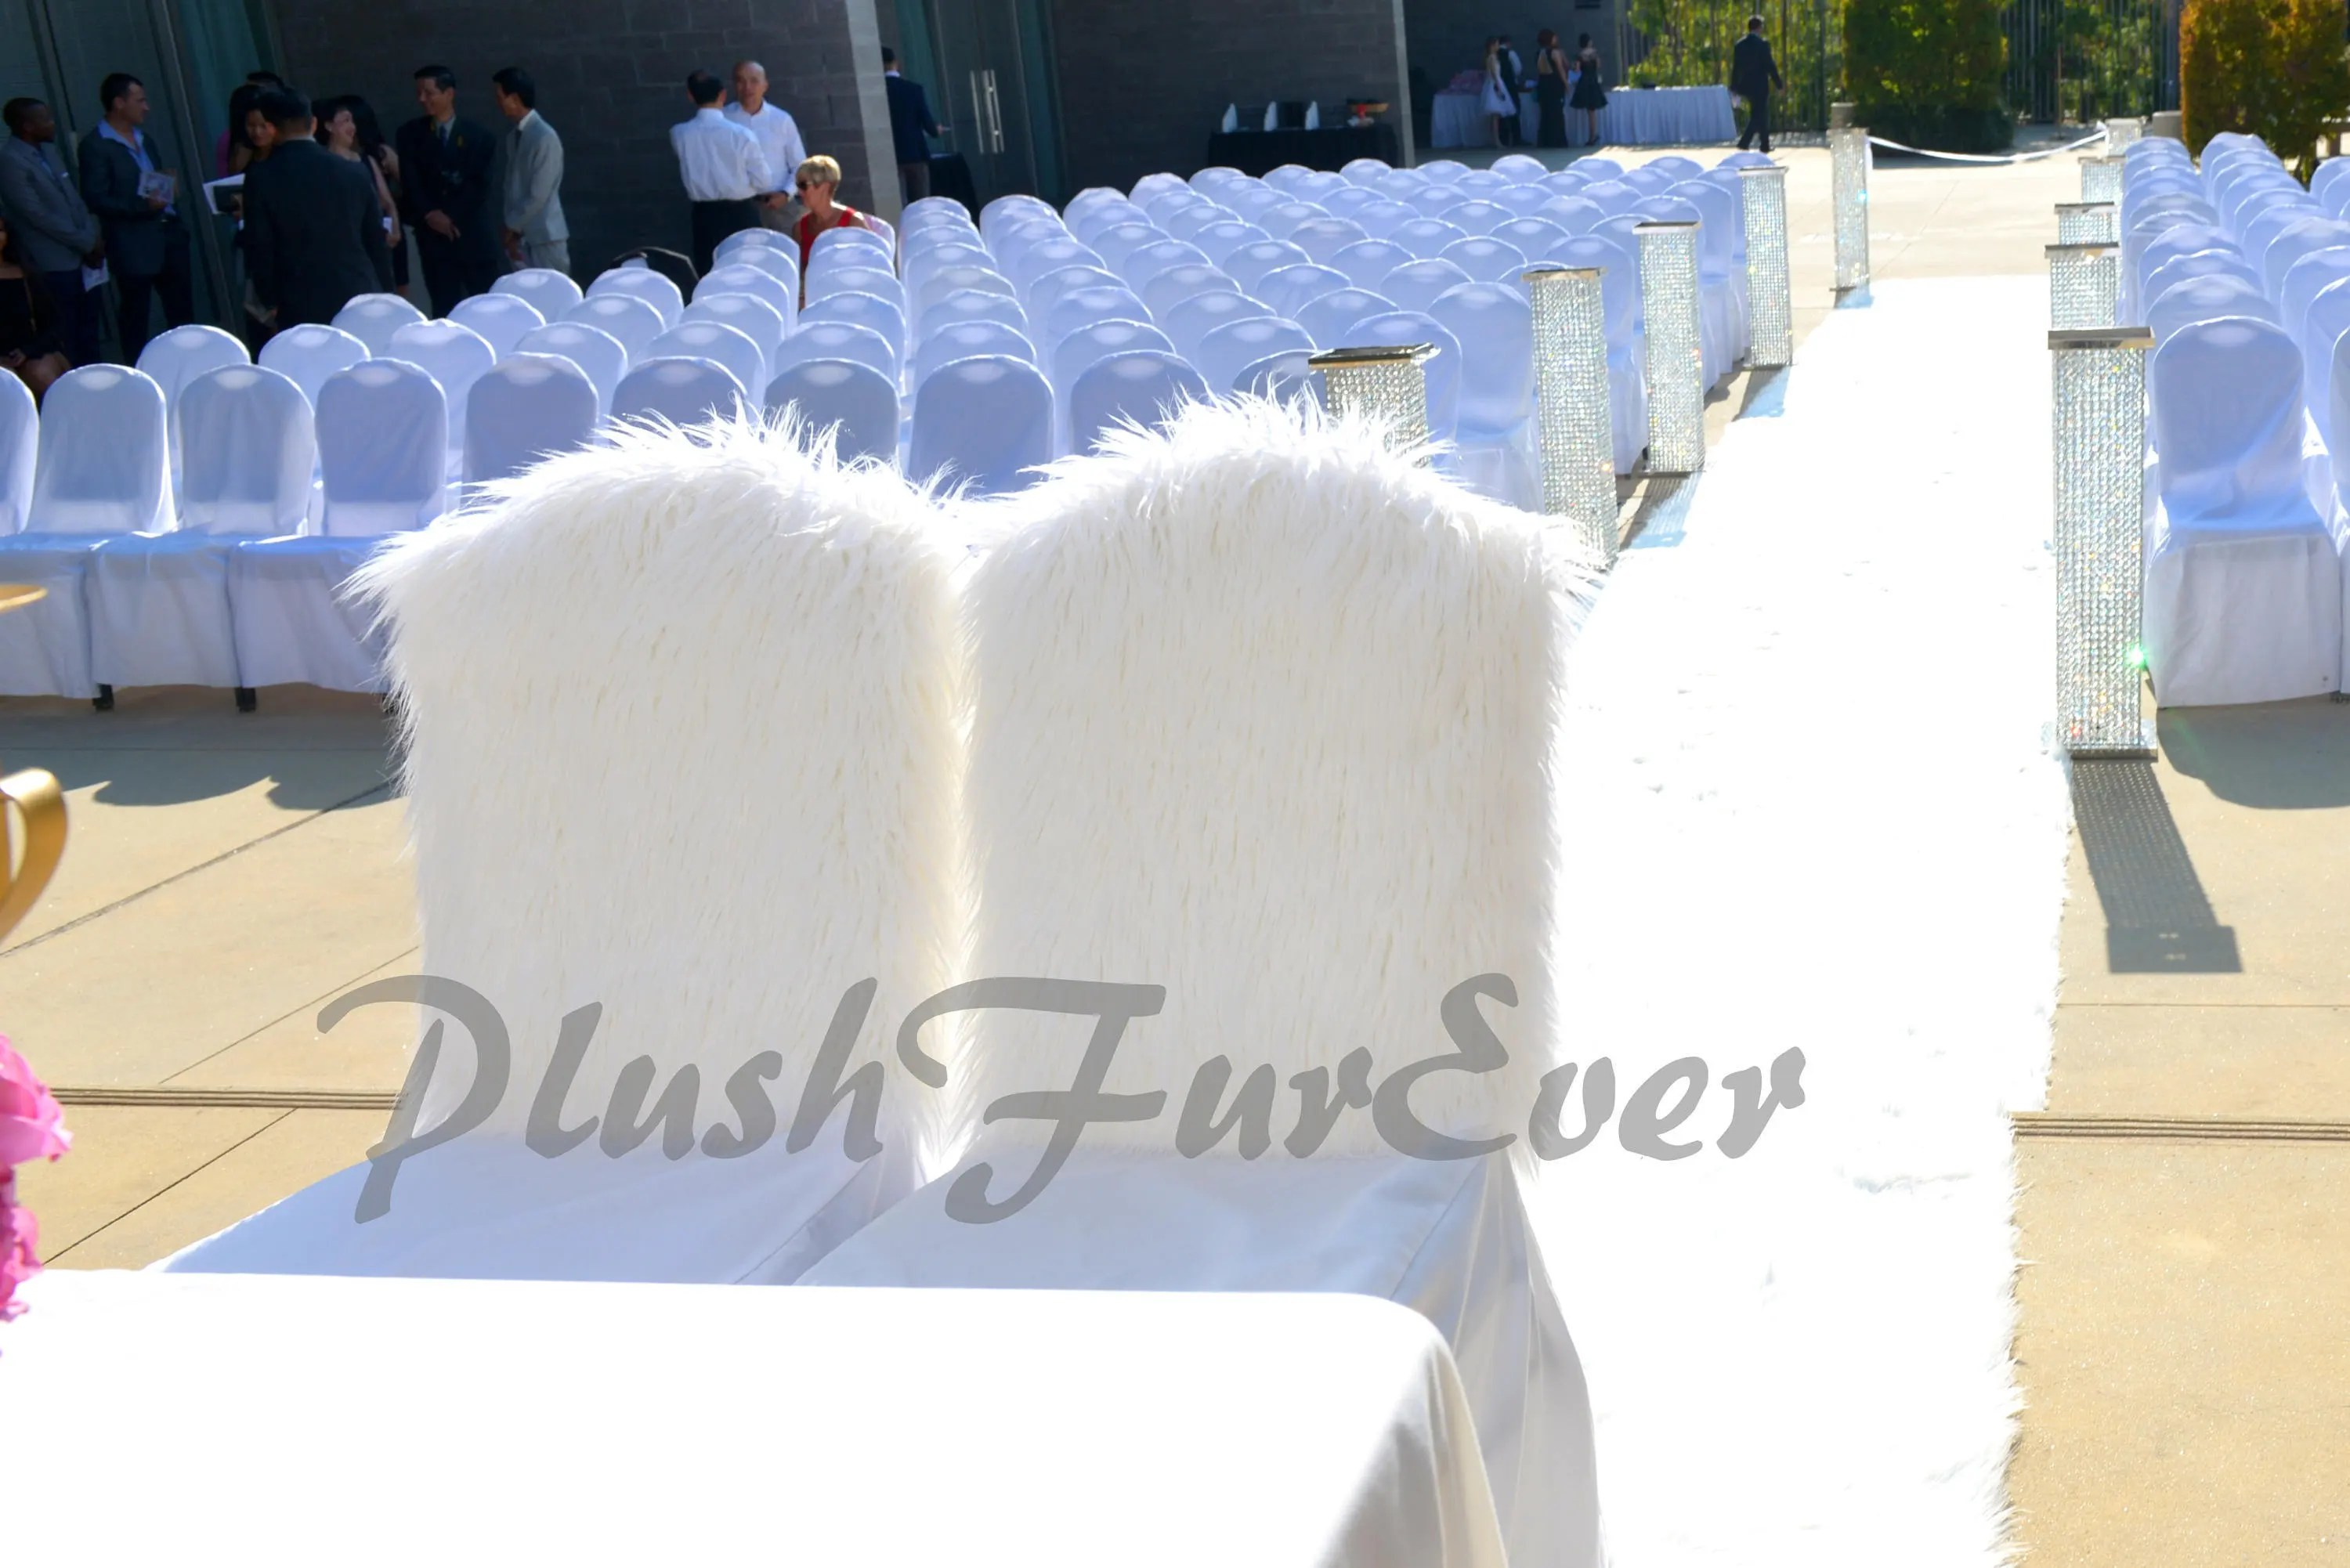 wedding bride and groom chairs desk chair doesn't stay up cover one pair seats